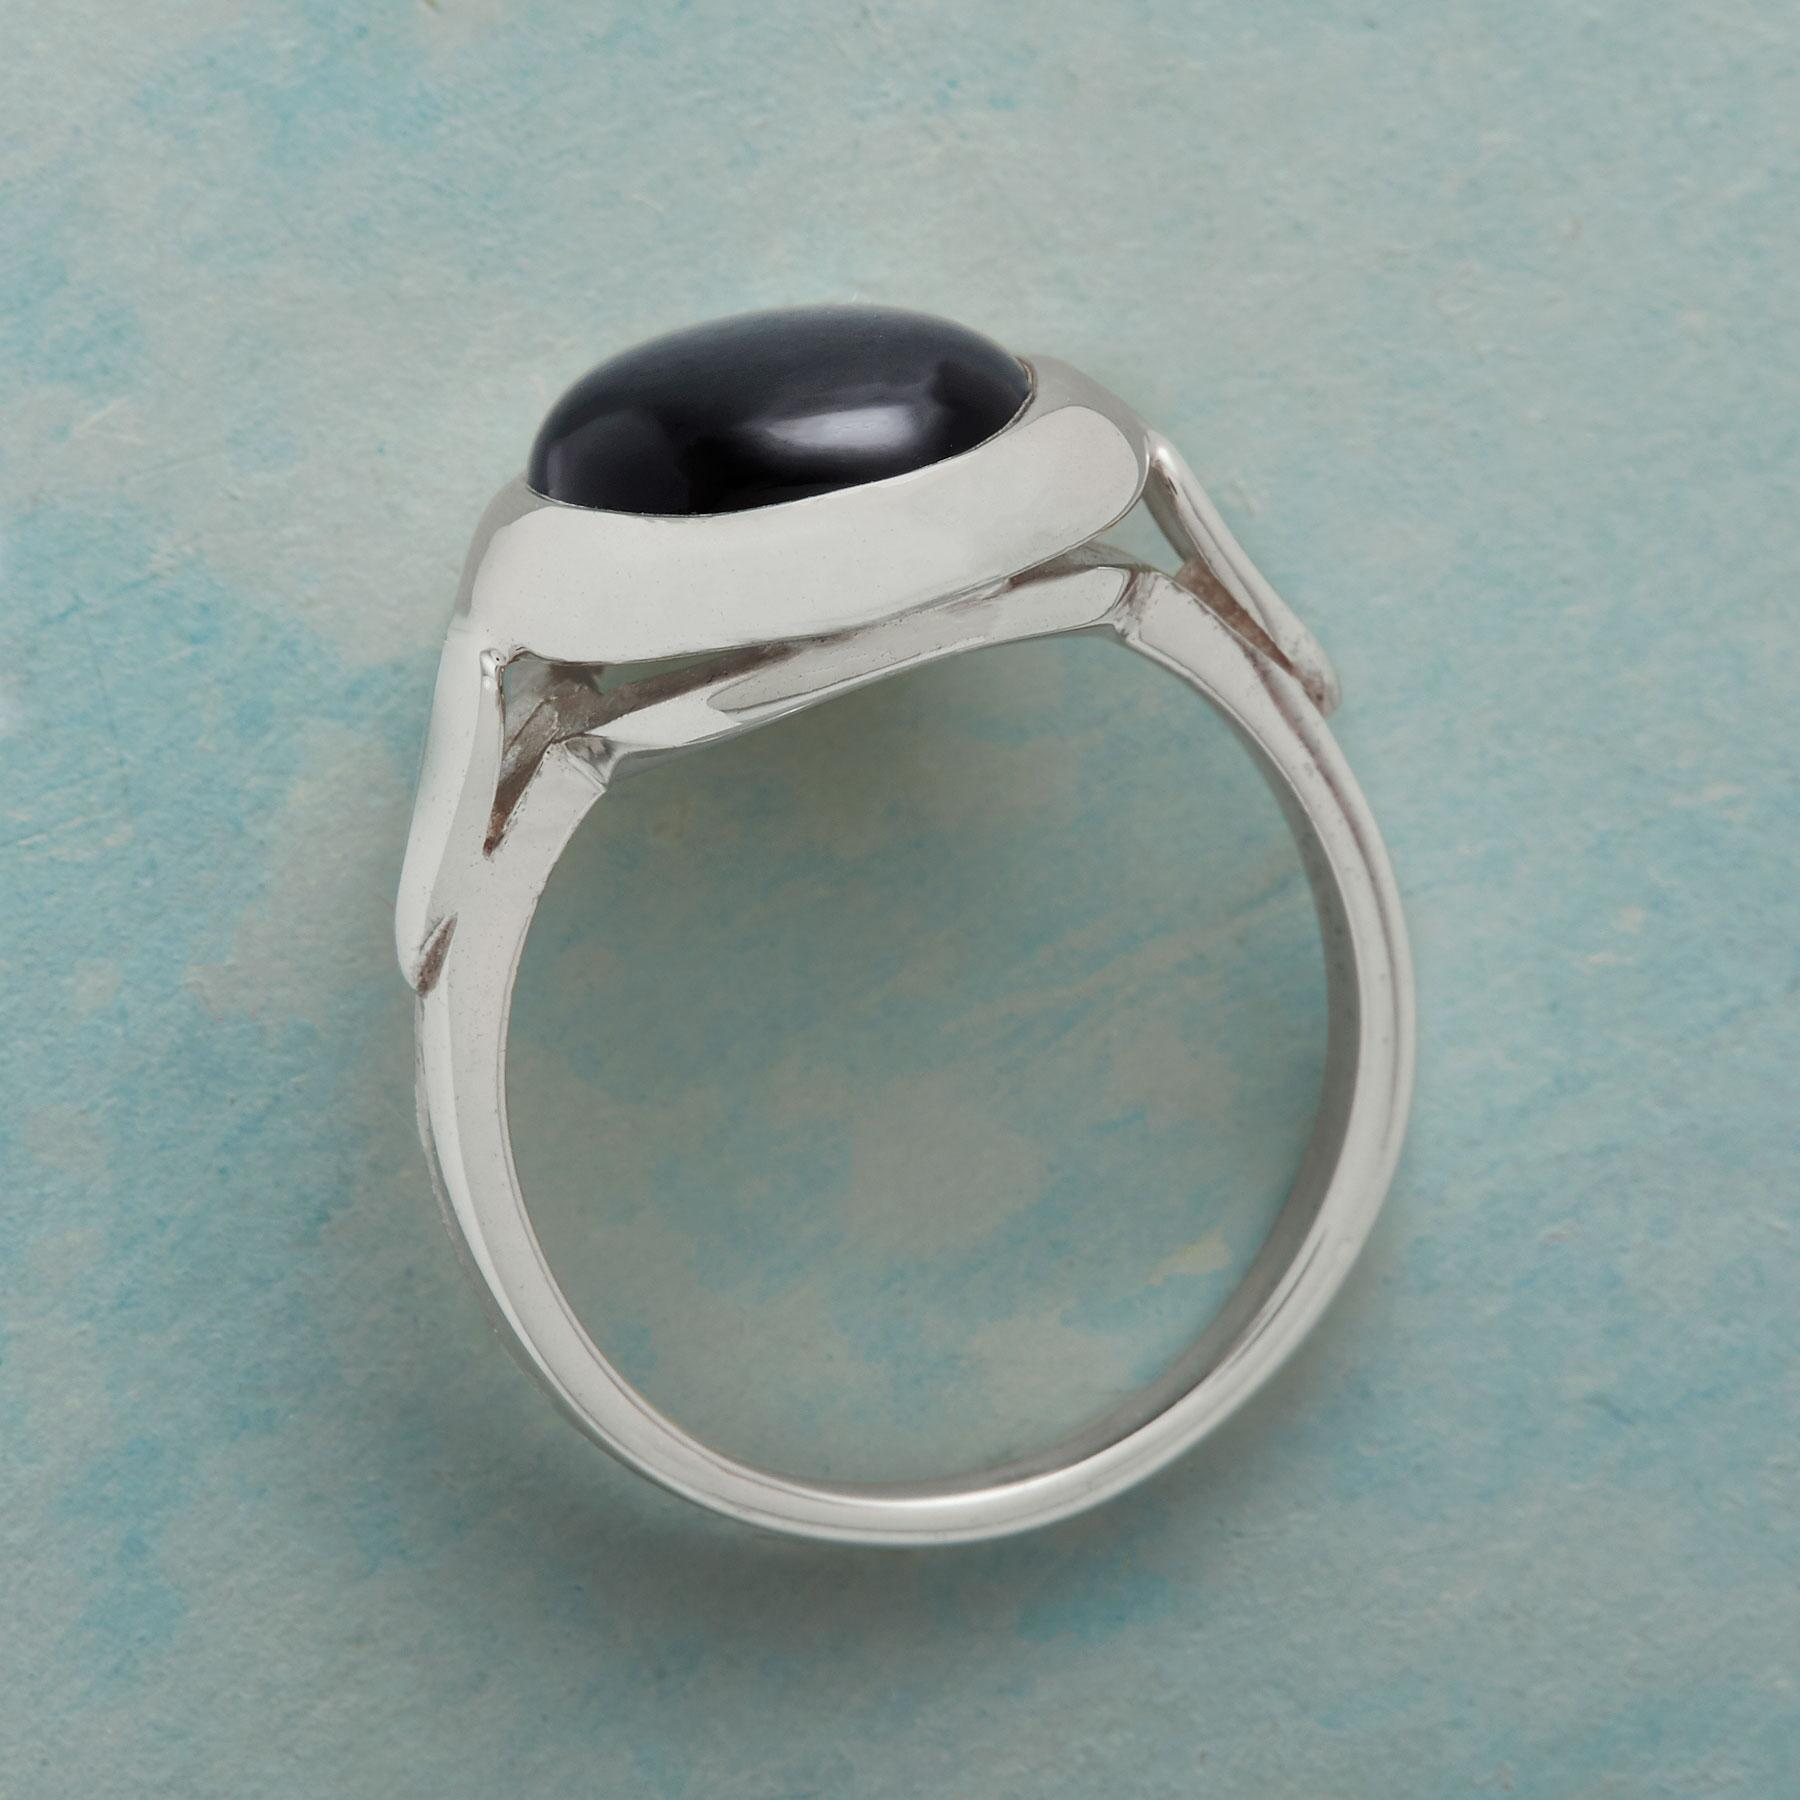 DARK SIDE OF THE MOON RING: View 2